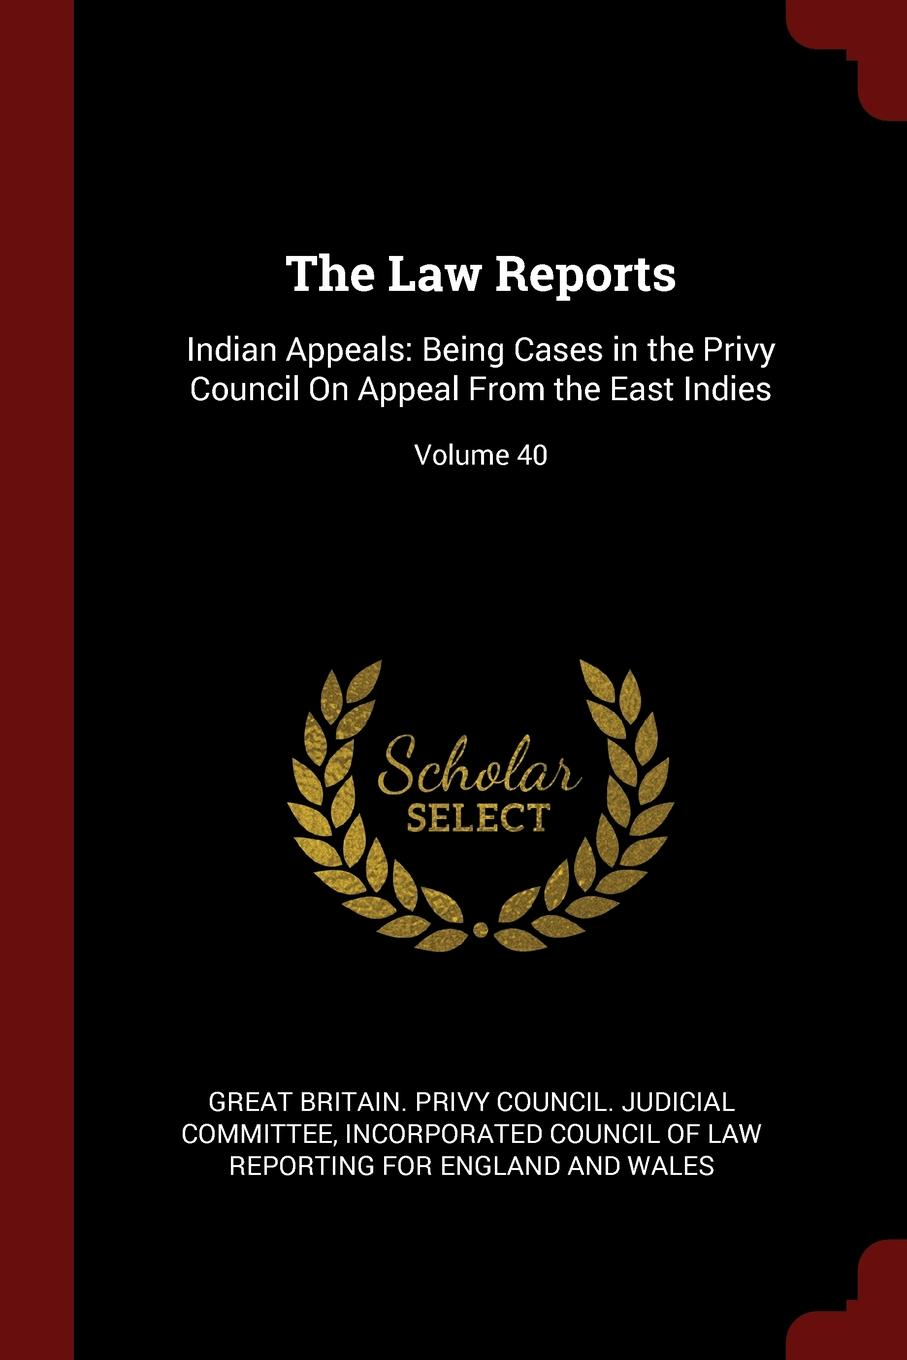 The Law Reports. Indian Appeals: Being Cases in the Privy Council On Appeal From East Indies; Volume 40